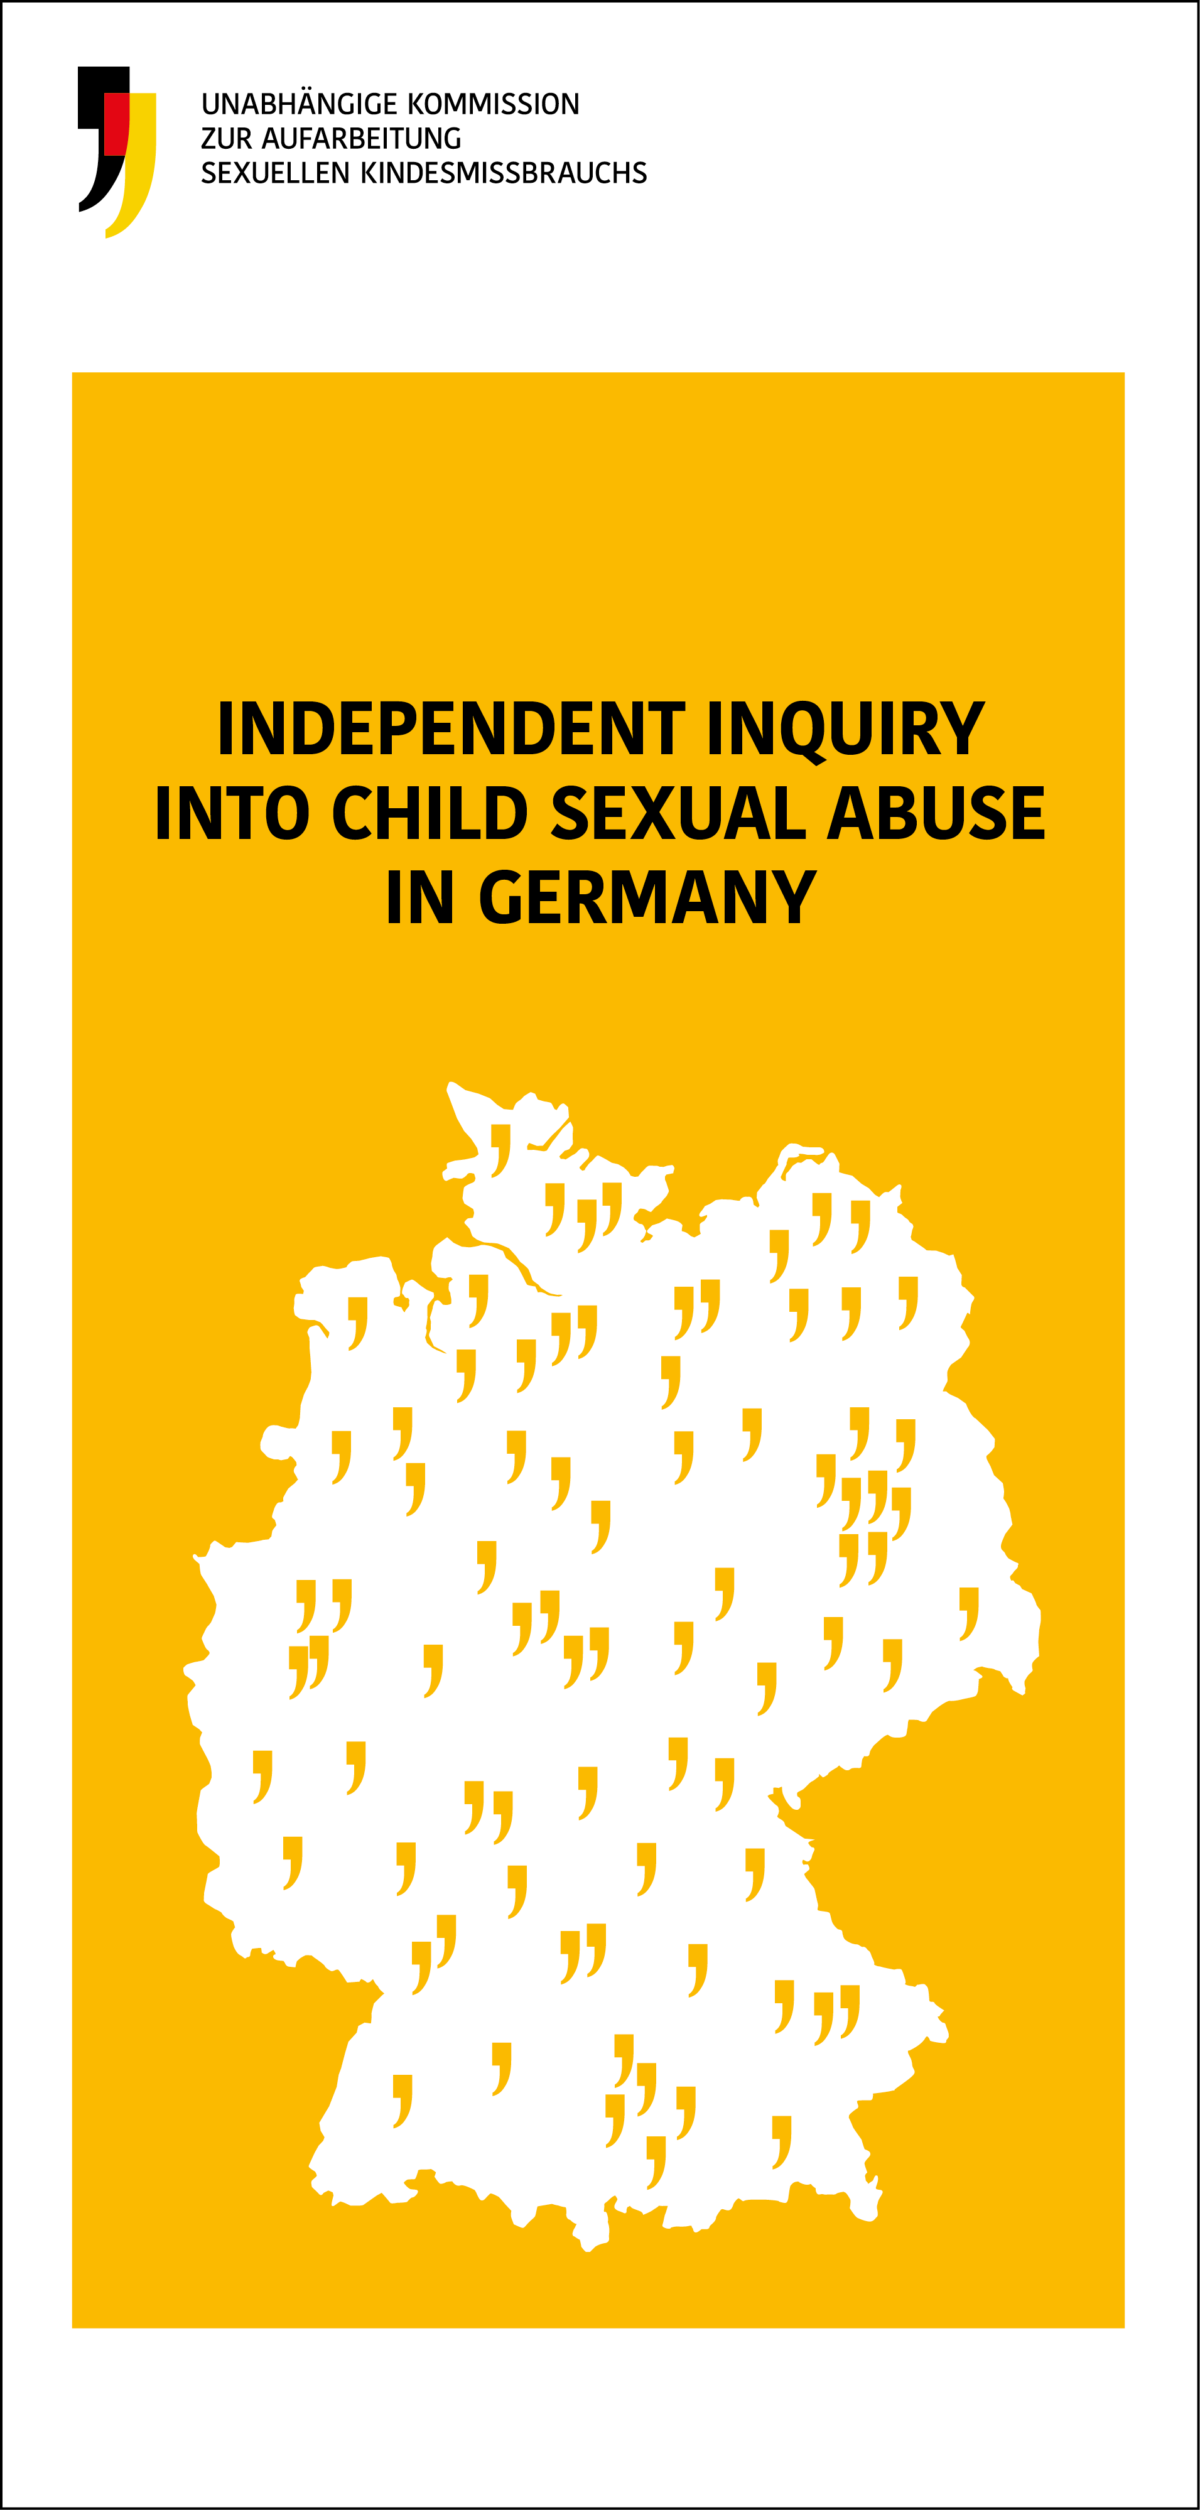 Vorderseite eines Flyers in englischer Sprache. Darauf steht der Name der Kommission in Englisch: Independent Inquiry into Child Sexual Abuse